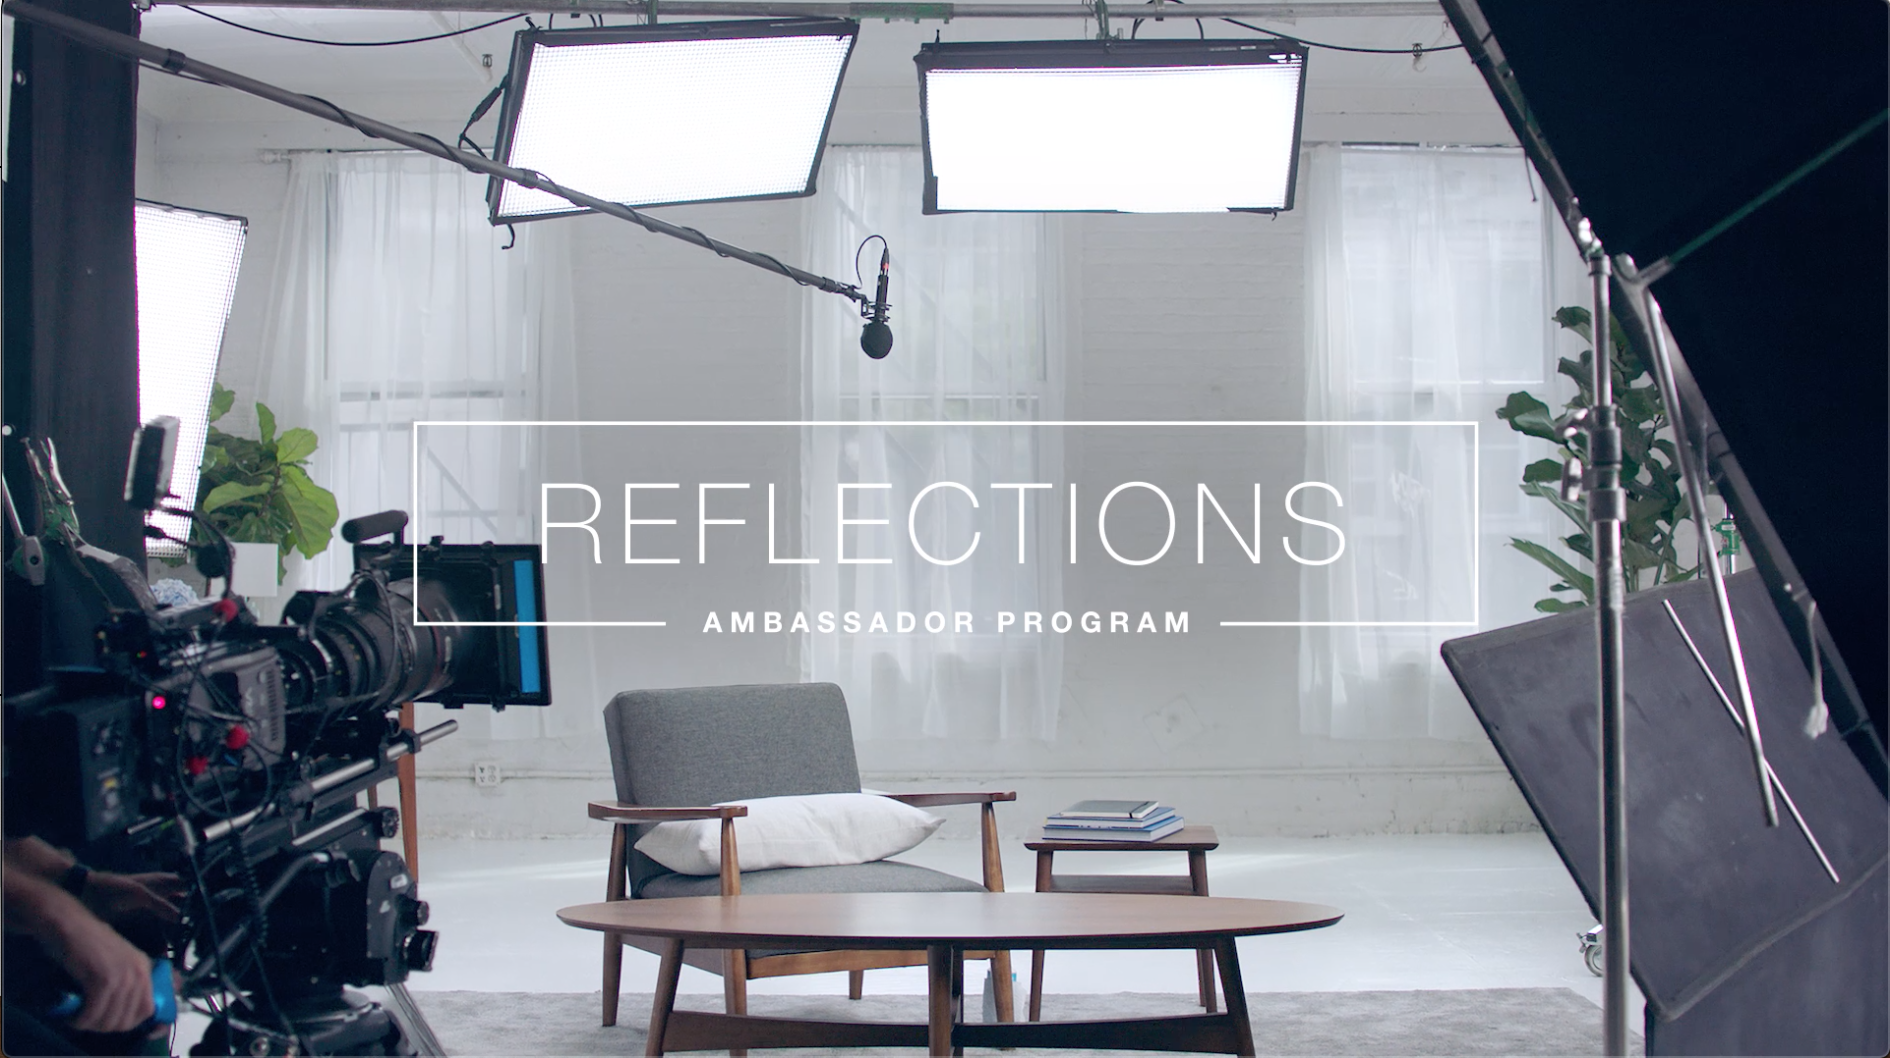 Watch video about becoming a Reflections Ambassador